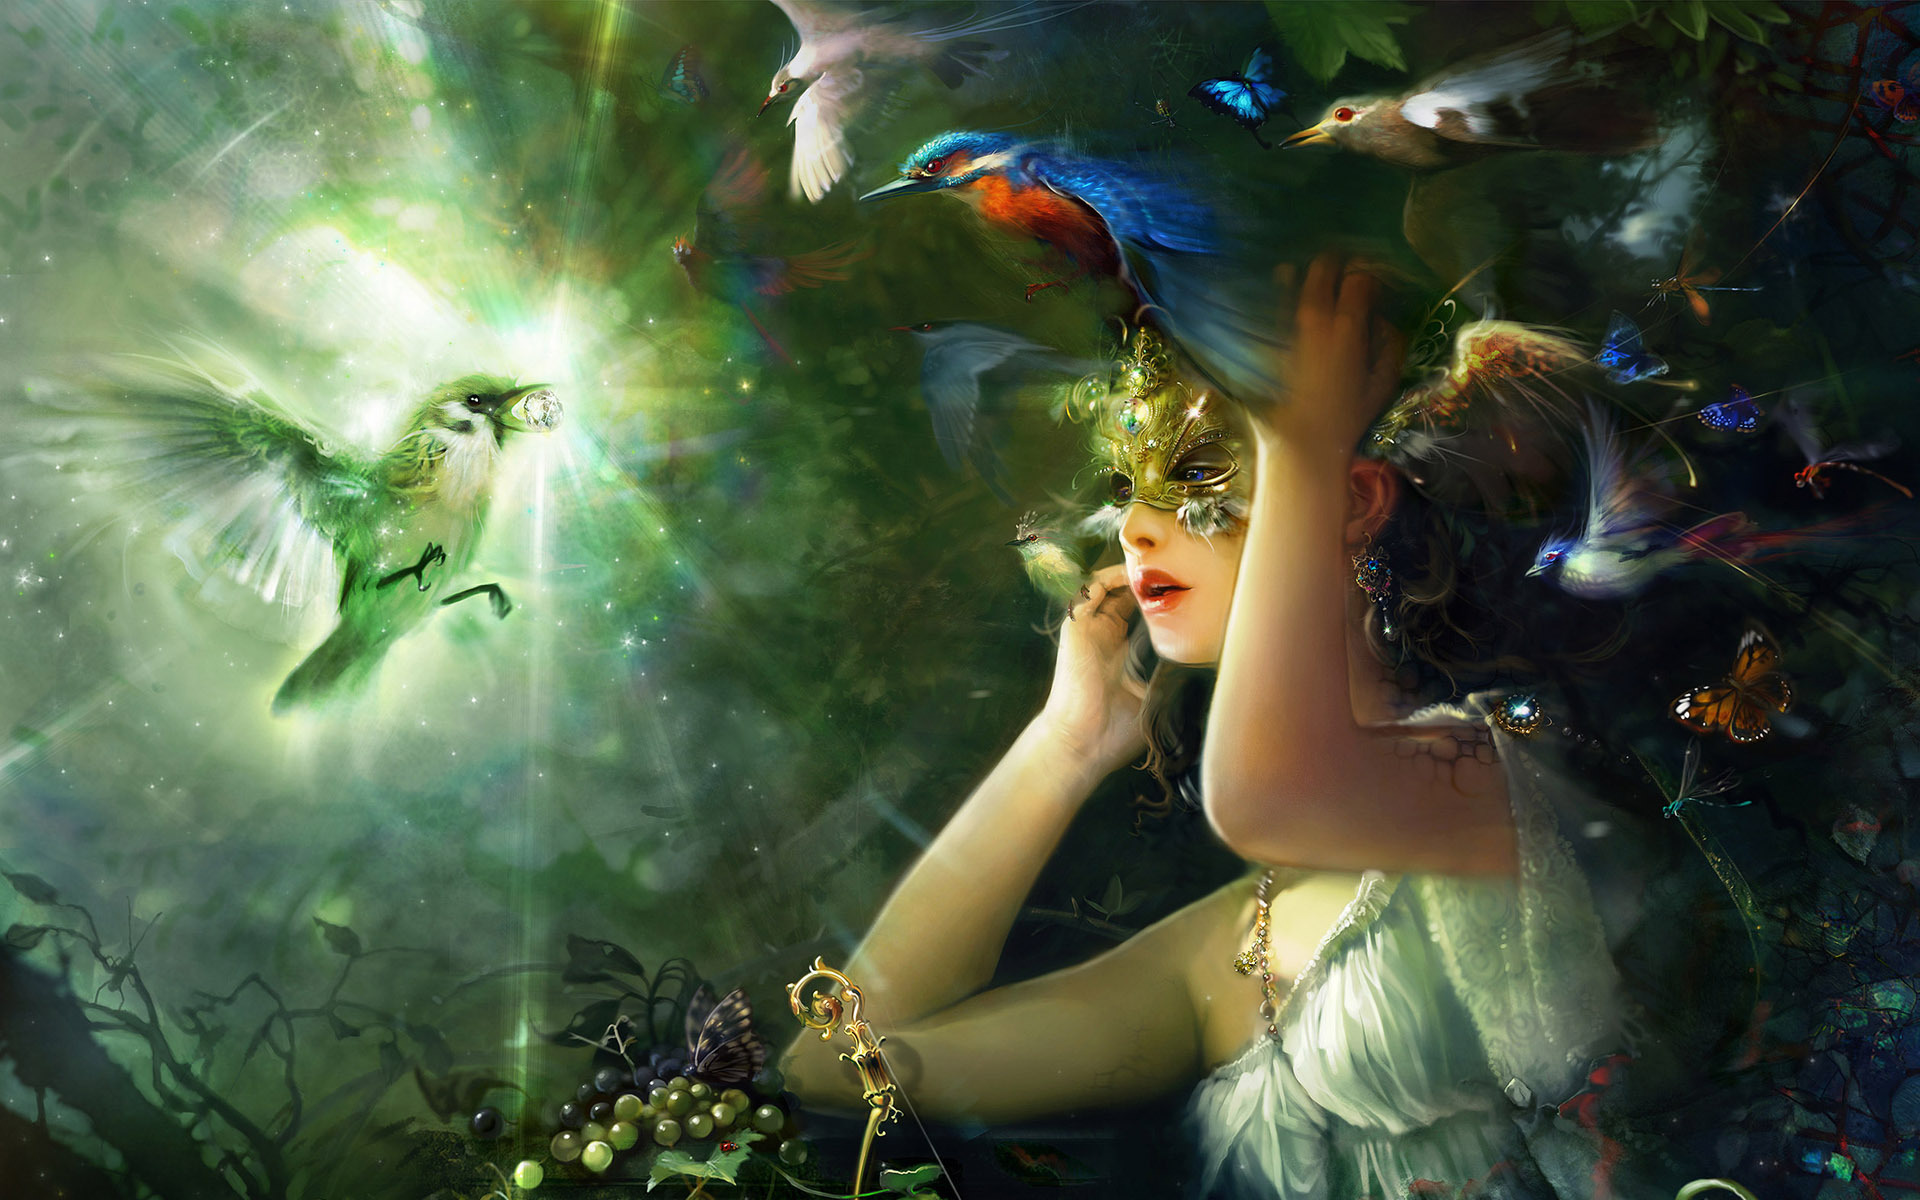 forest-fairy-surrounded-by-birds-1836.jpg